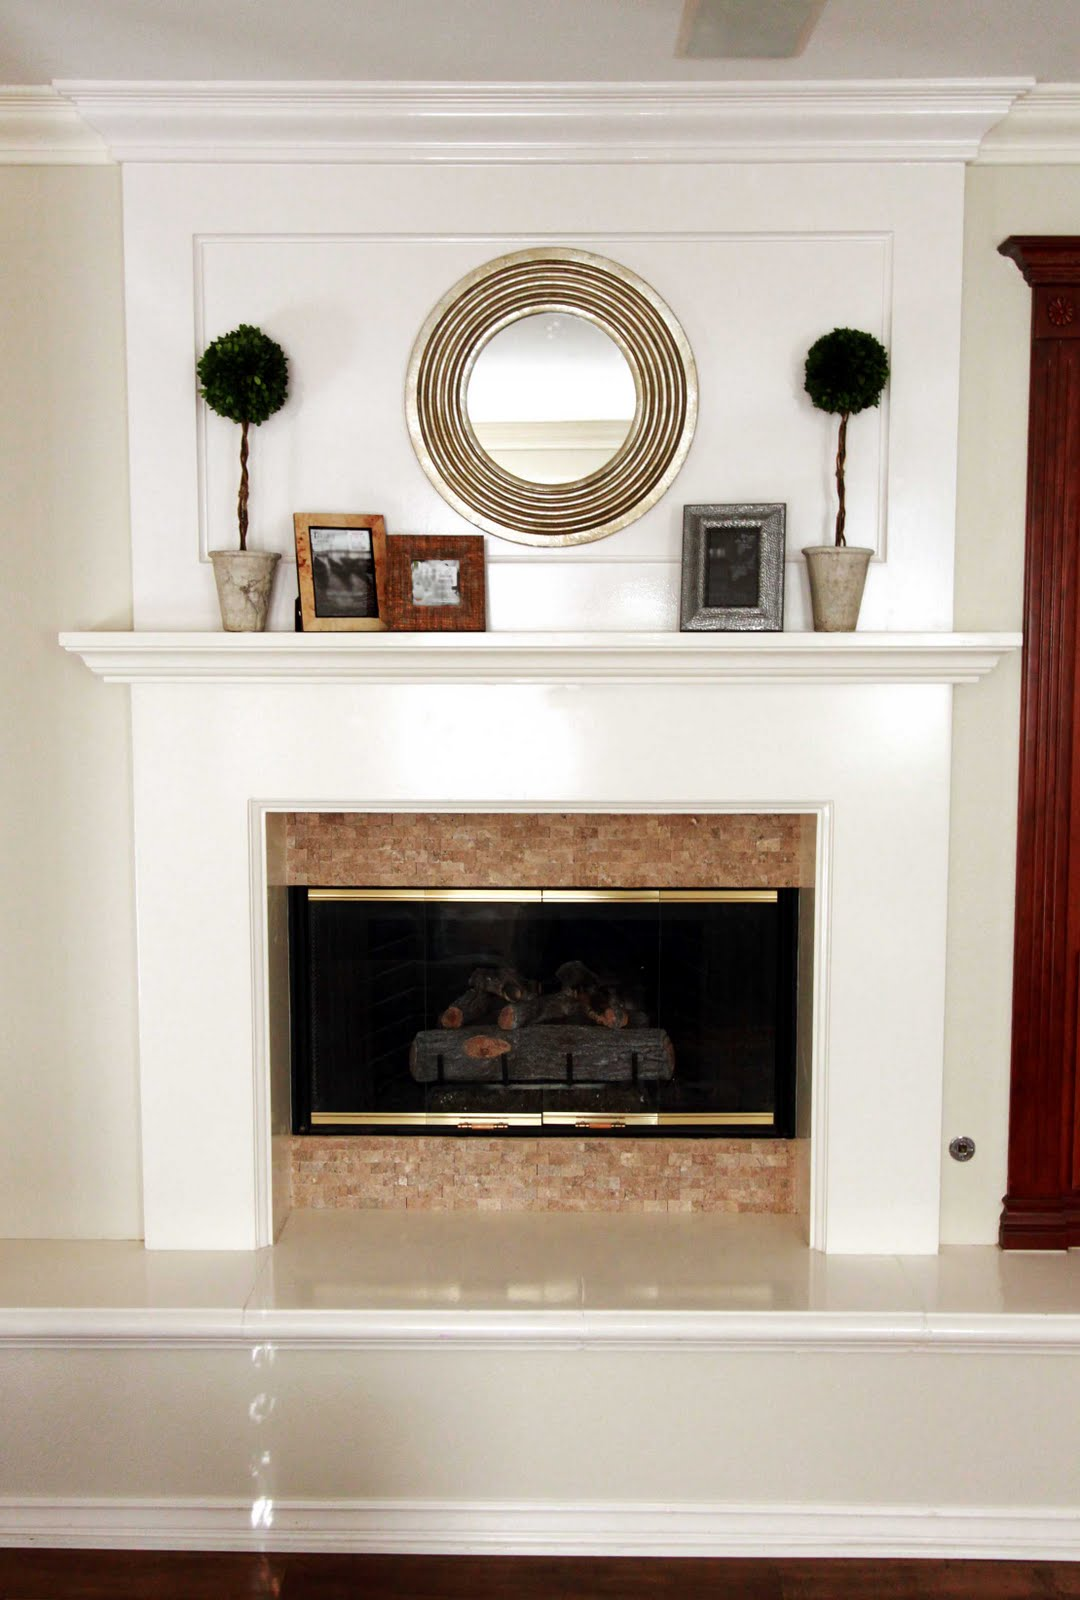 fireplace design idea fresh fireplace designs ideas photos top - Fireplace Design Idea